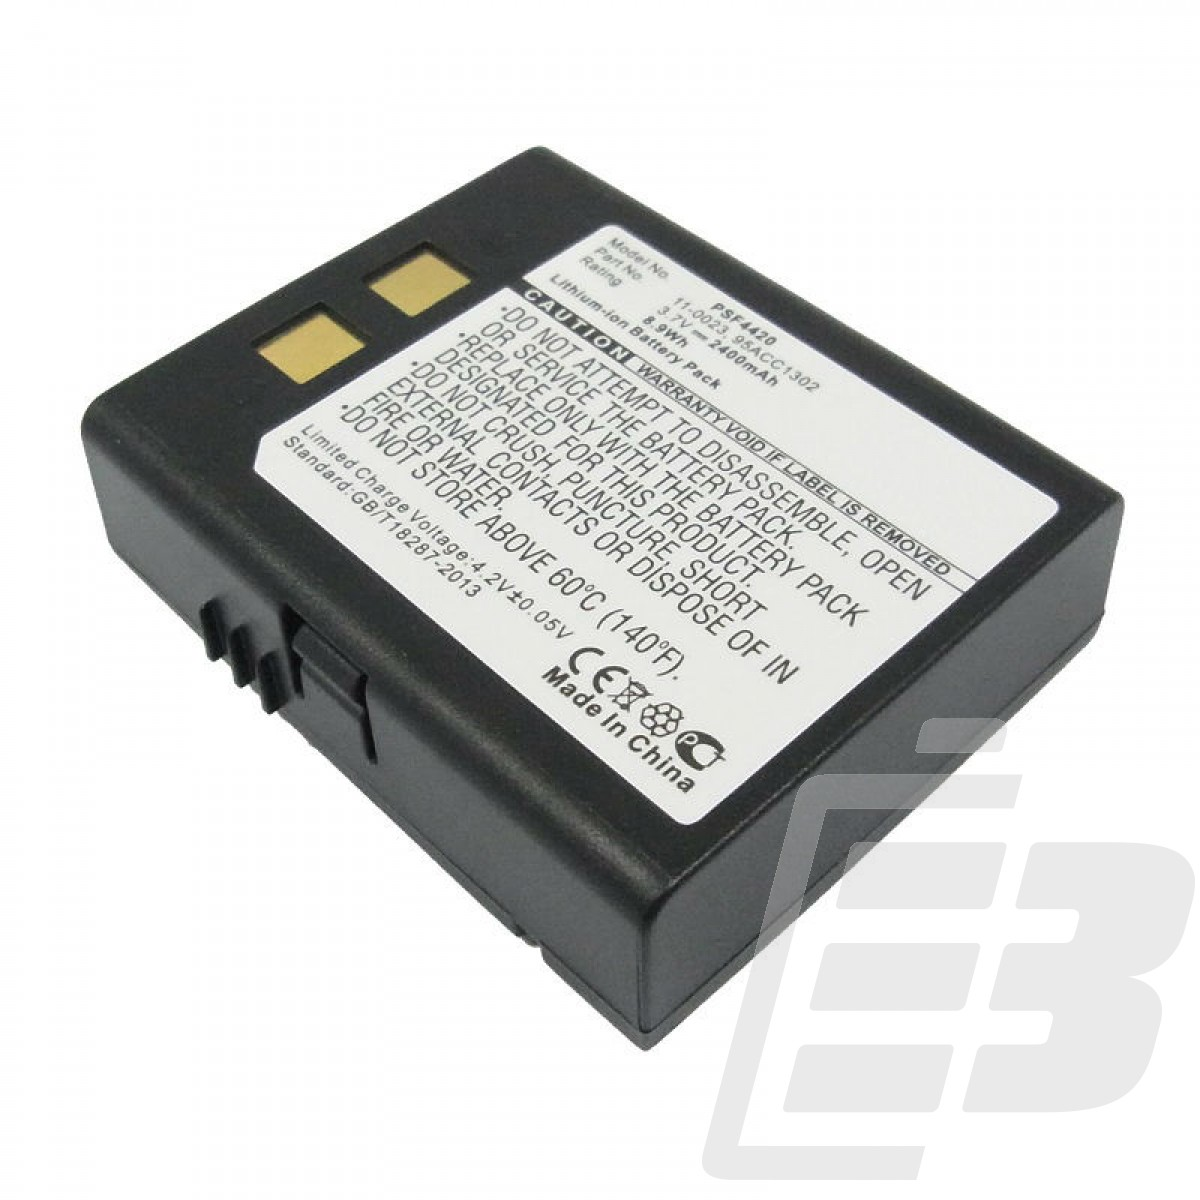 Barcode scanner battery Datalogic Falcon 4420_